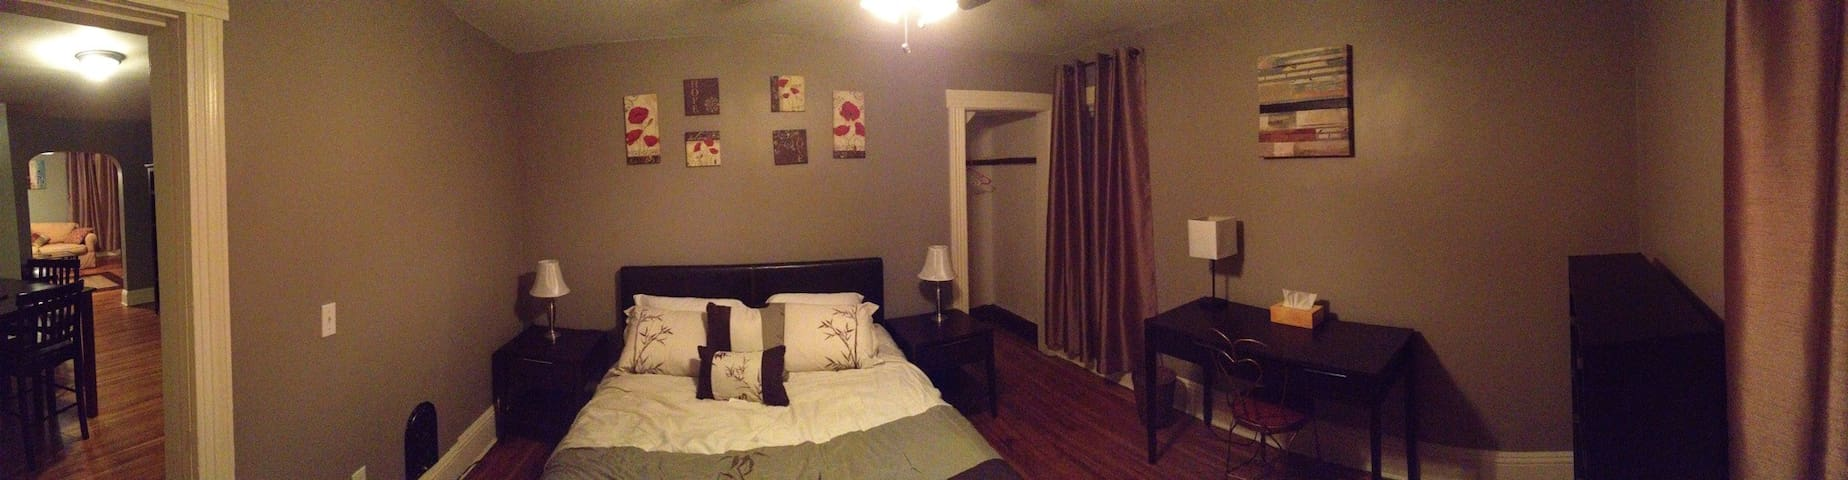 Beautifully Renovated 1 Bedroom Apt Apartments For Rent In Rochester New York United States